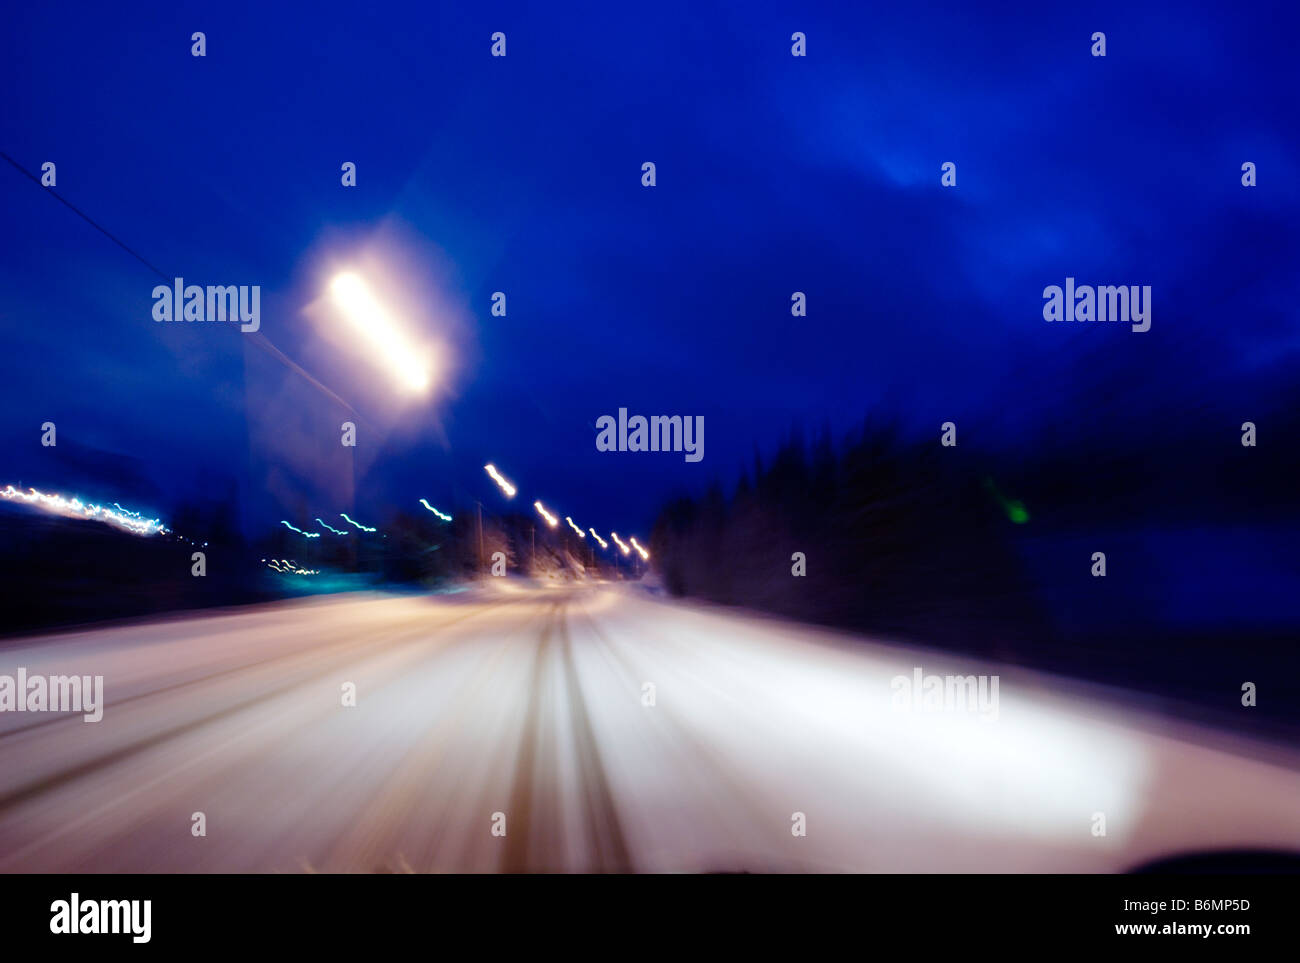 Wintery road, motion blurred - Stock Image